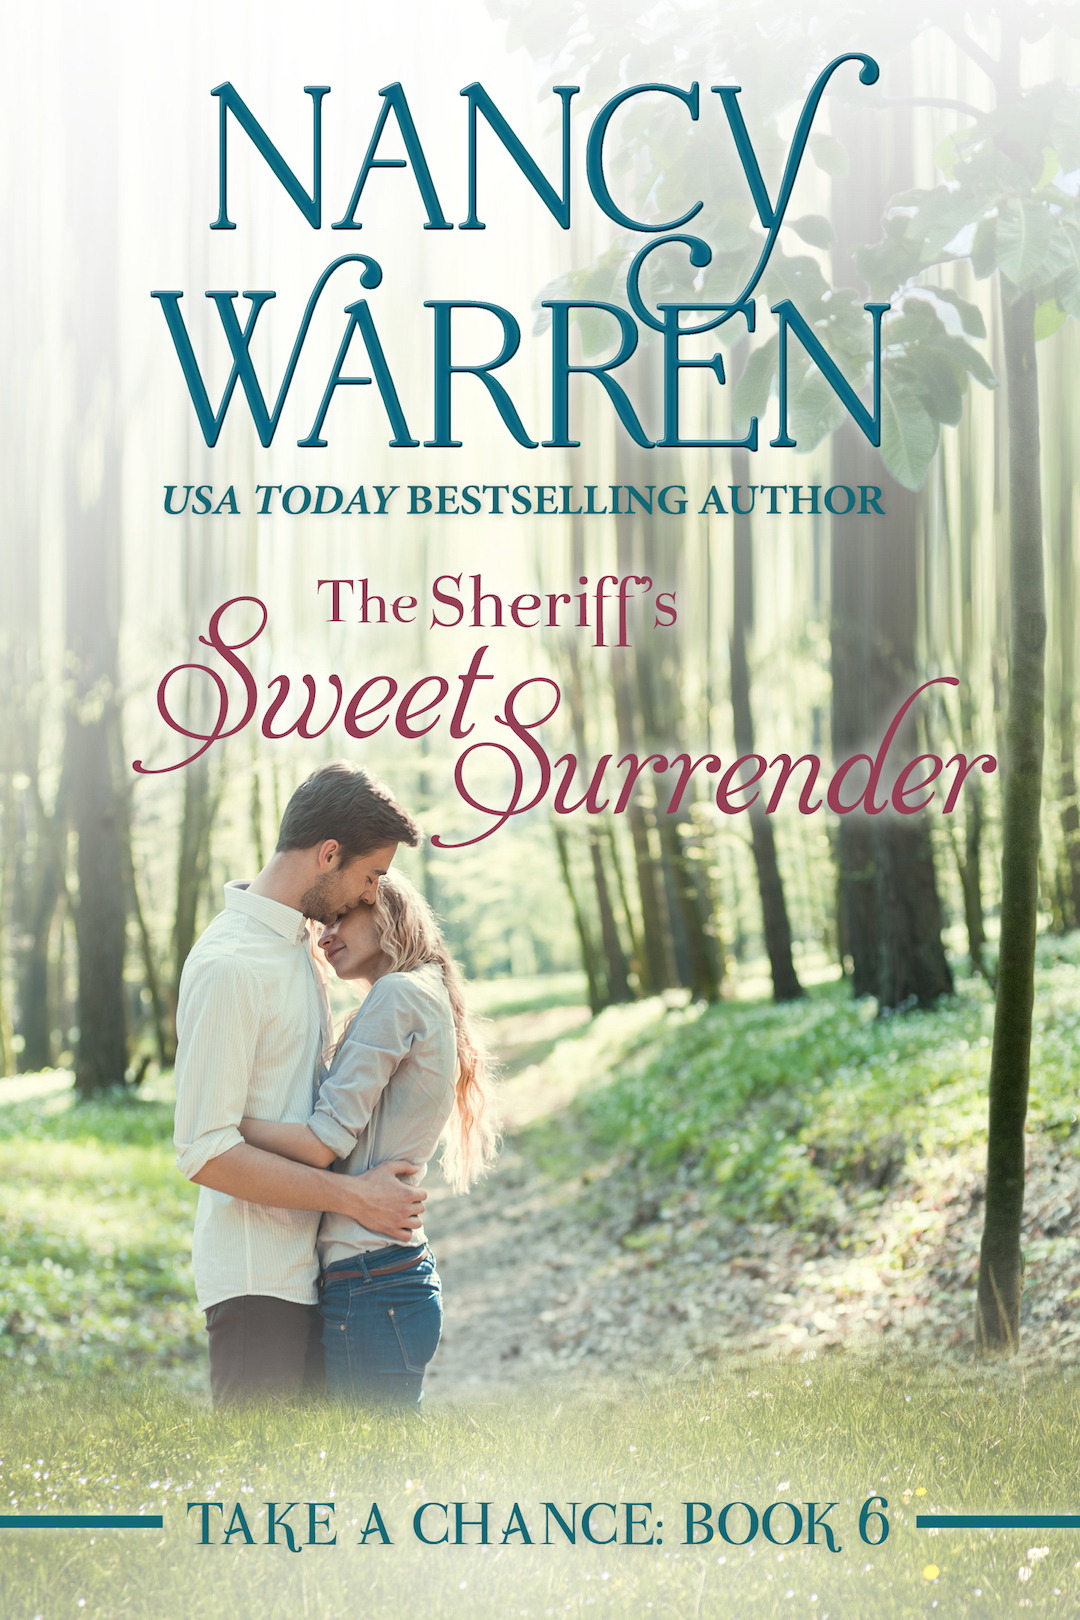 The Sheriff's Sweet Surrender (Take a Chance Book 6)